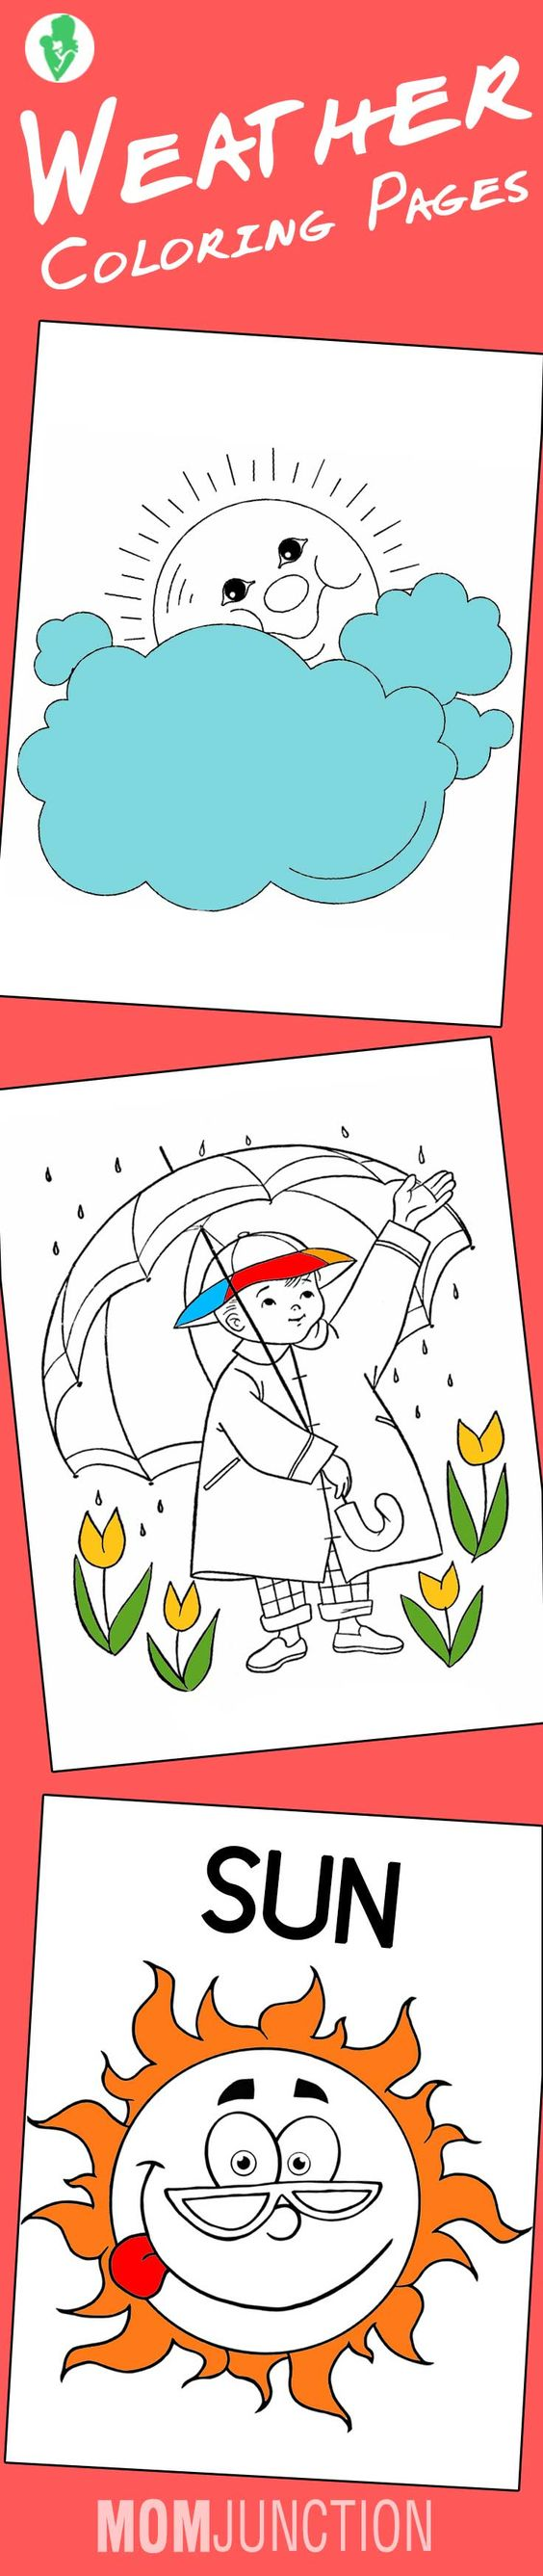 Top 10 free printable weather coloring pages online for Coloring pages weather